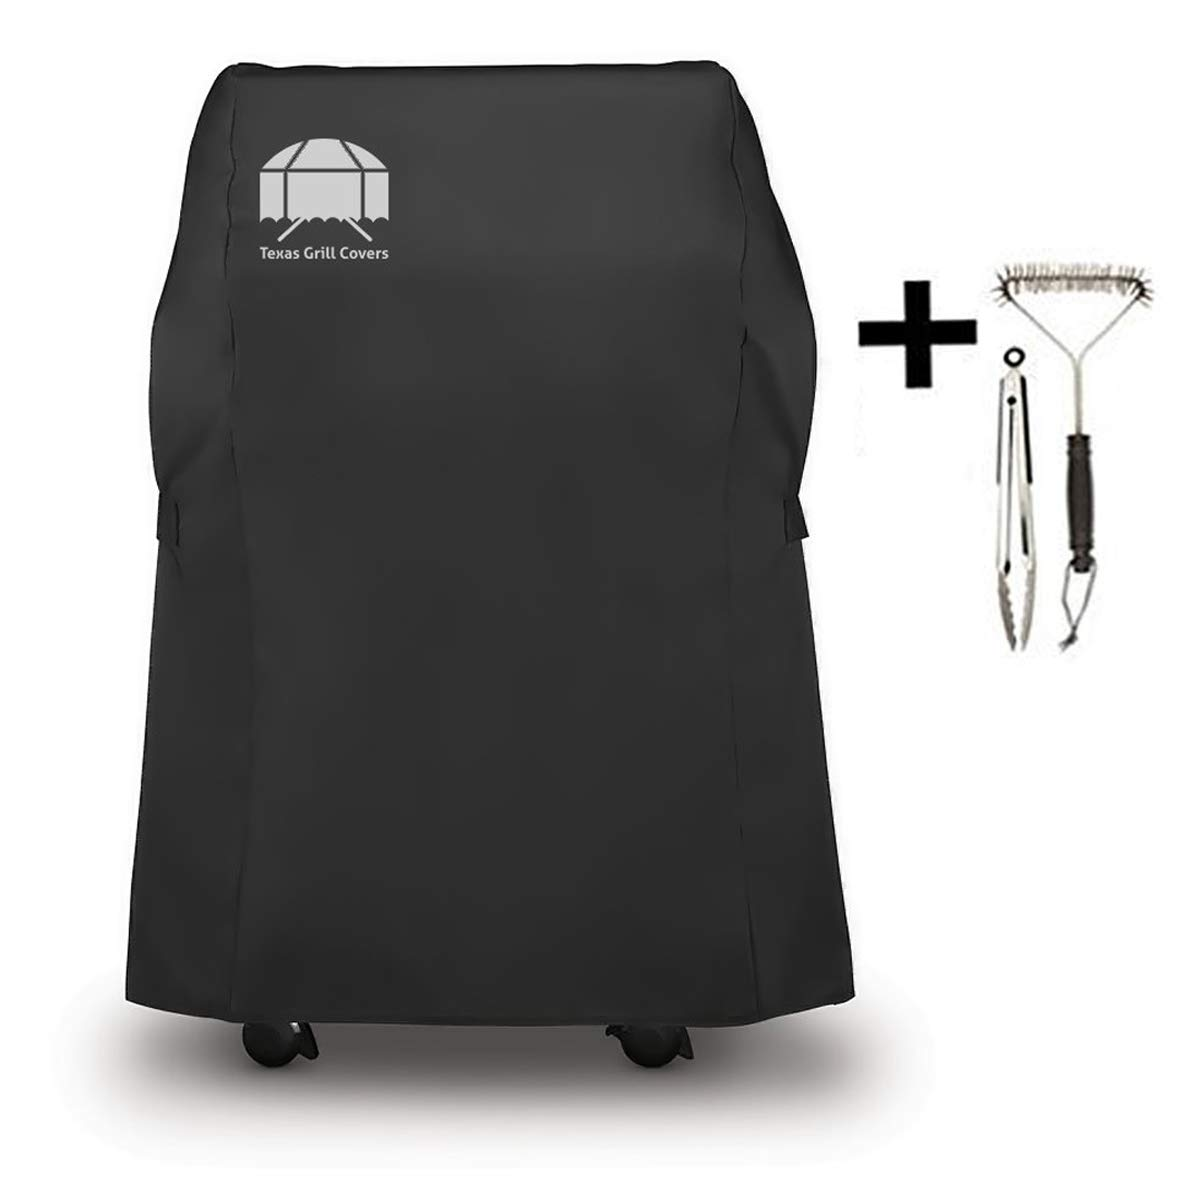 Texas Grill Covers Weber 7105 Grill Cover for Spirit 210 Series Gas Grills Including Brush and Tongs by Texas Grill Covers